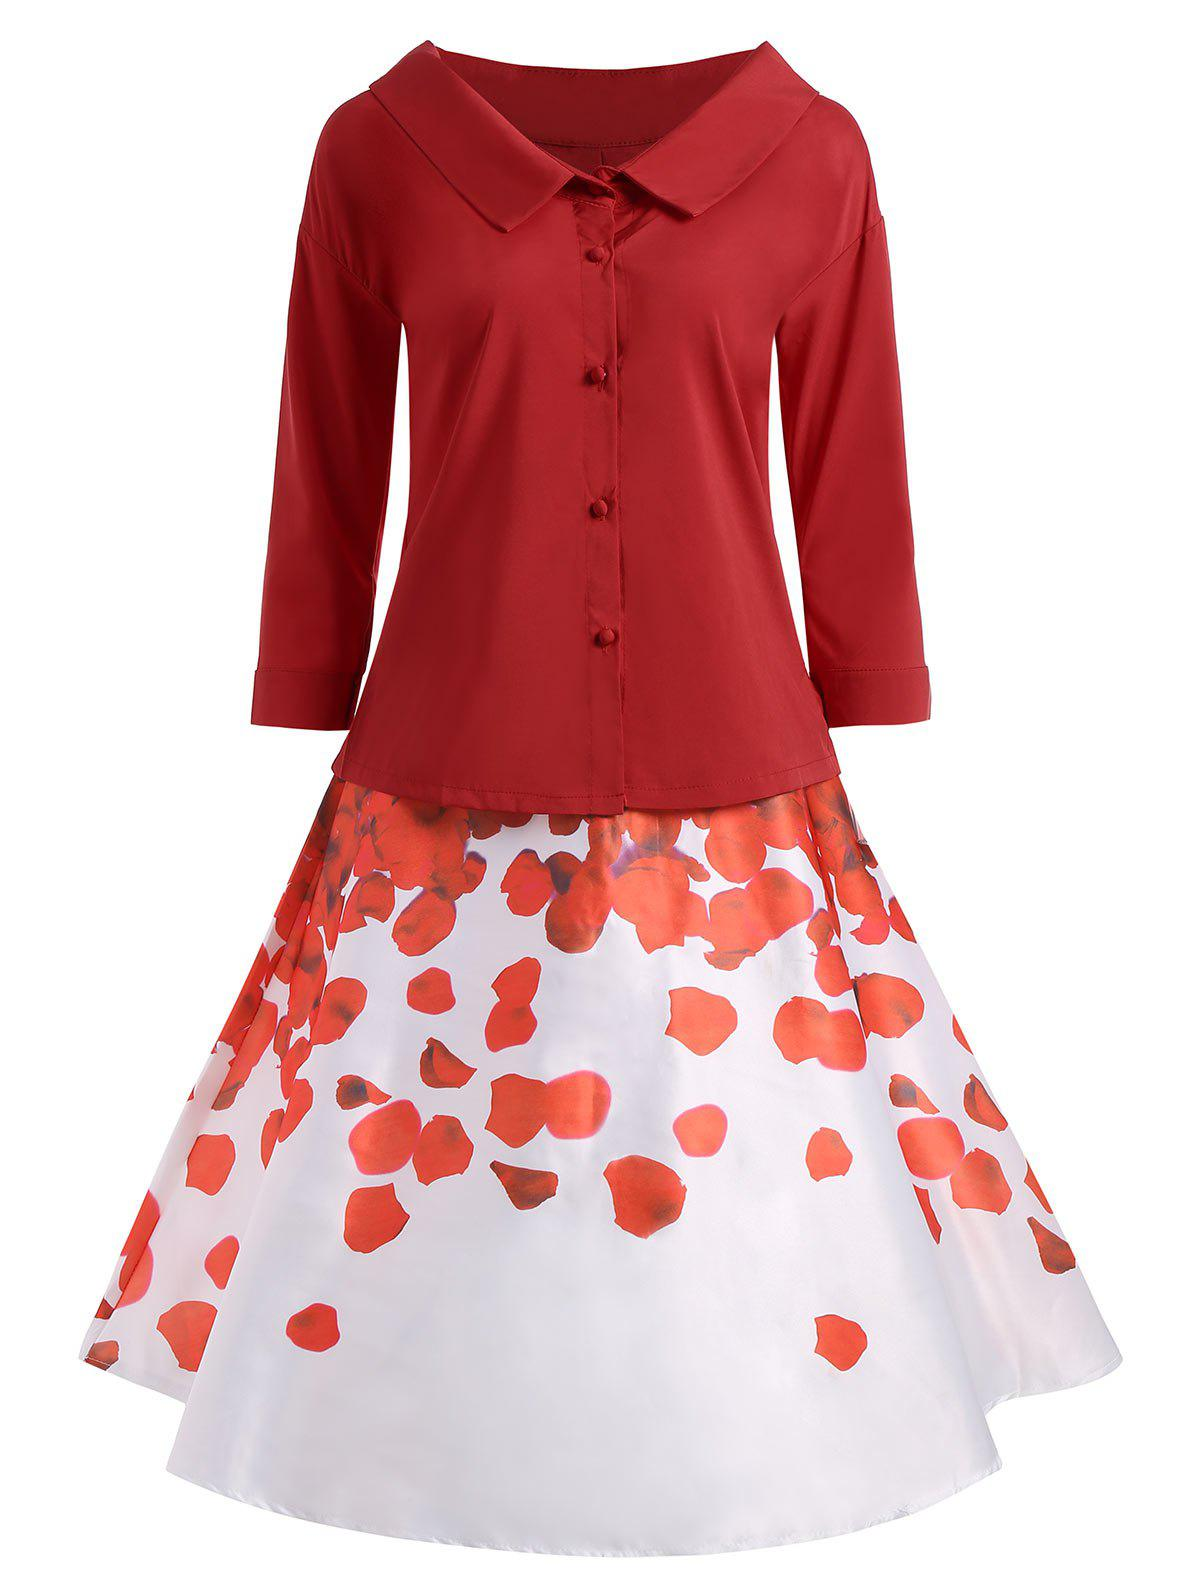 Button Up Blouse with Printed Skirt - RED L